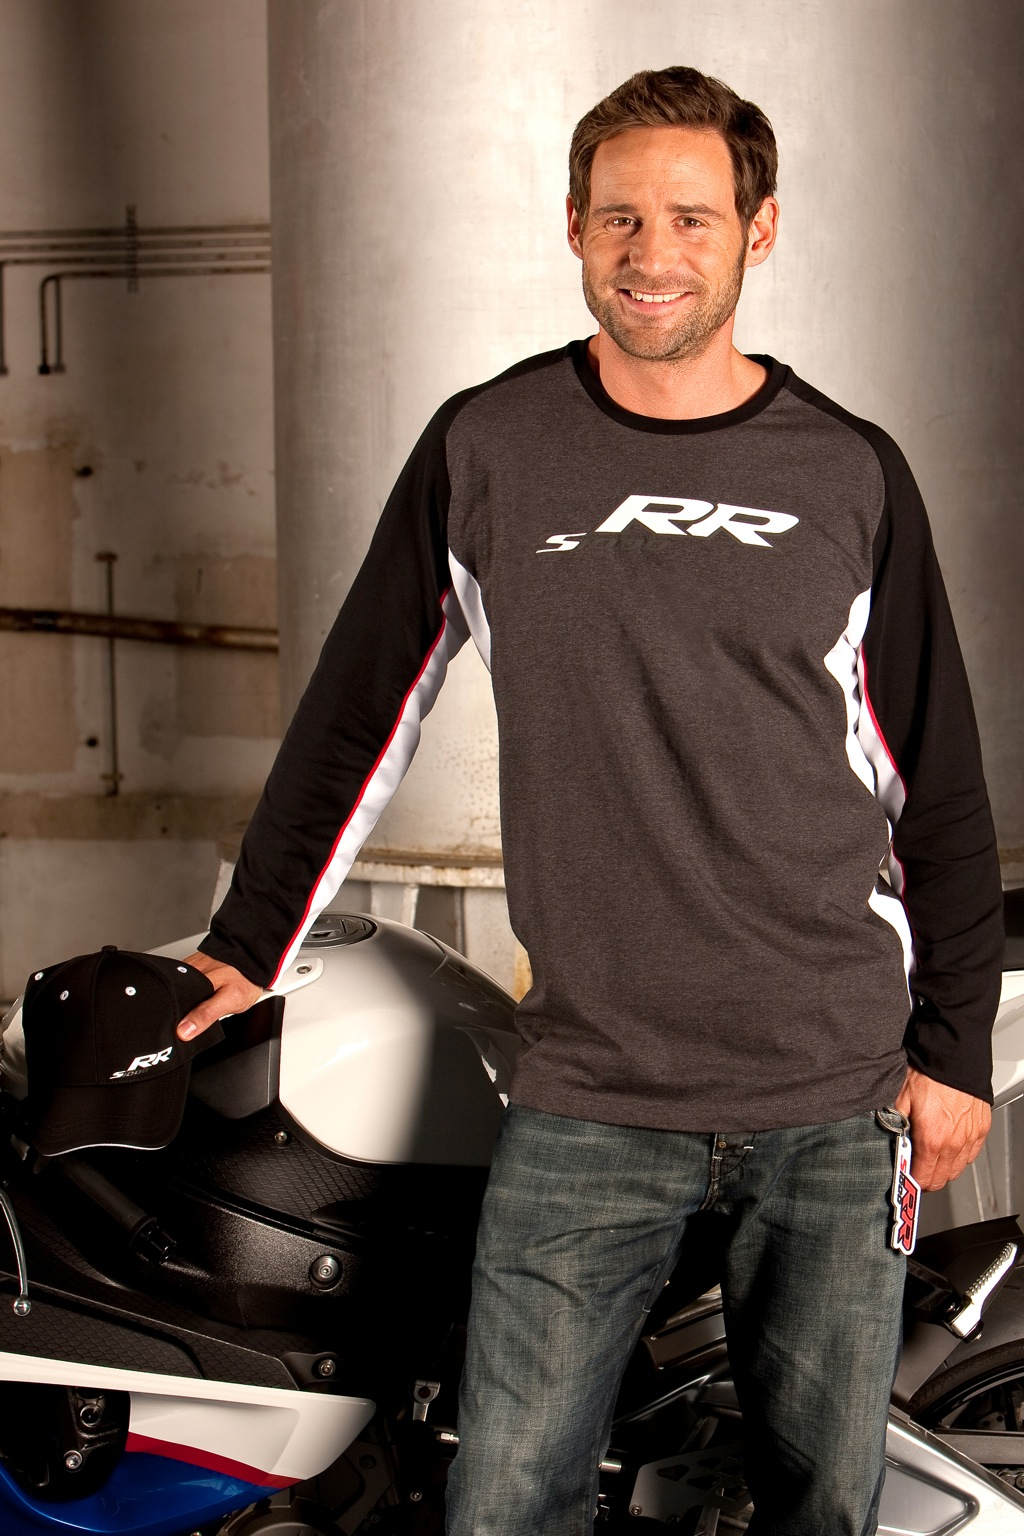 BMW Launches 2011 Rider Equipment Collection